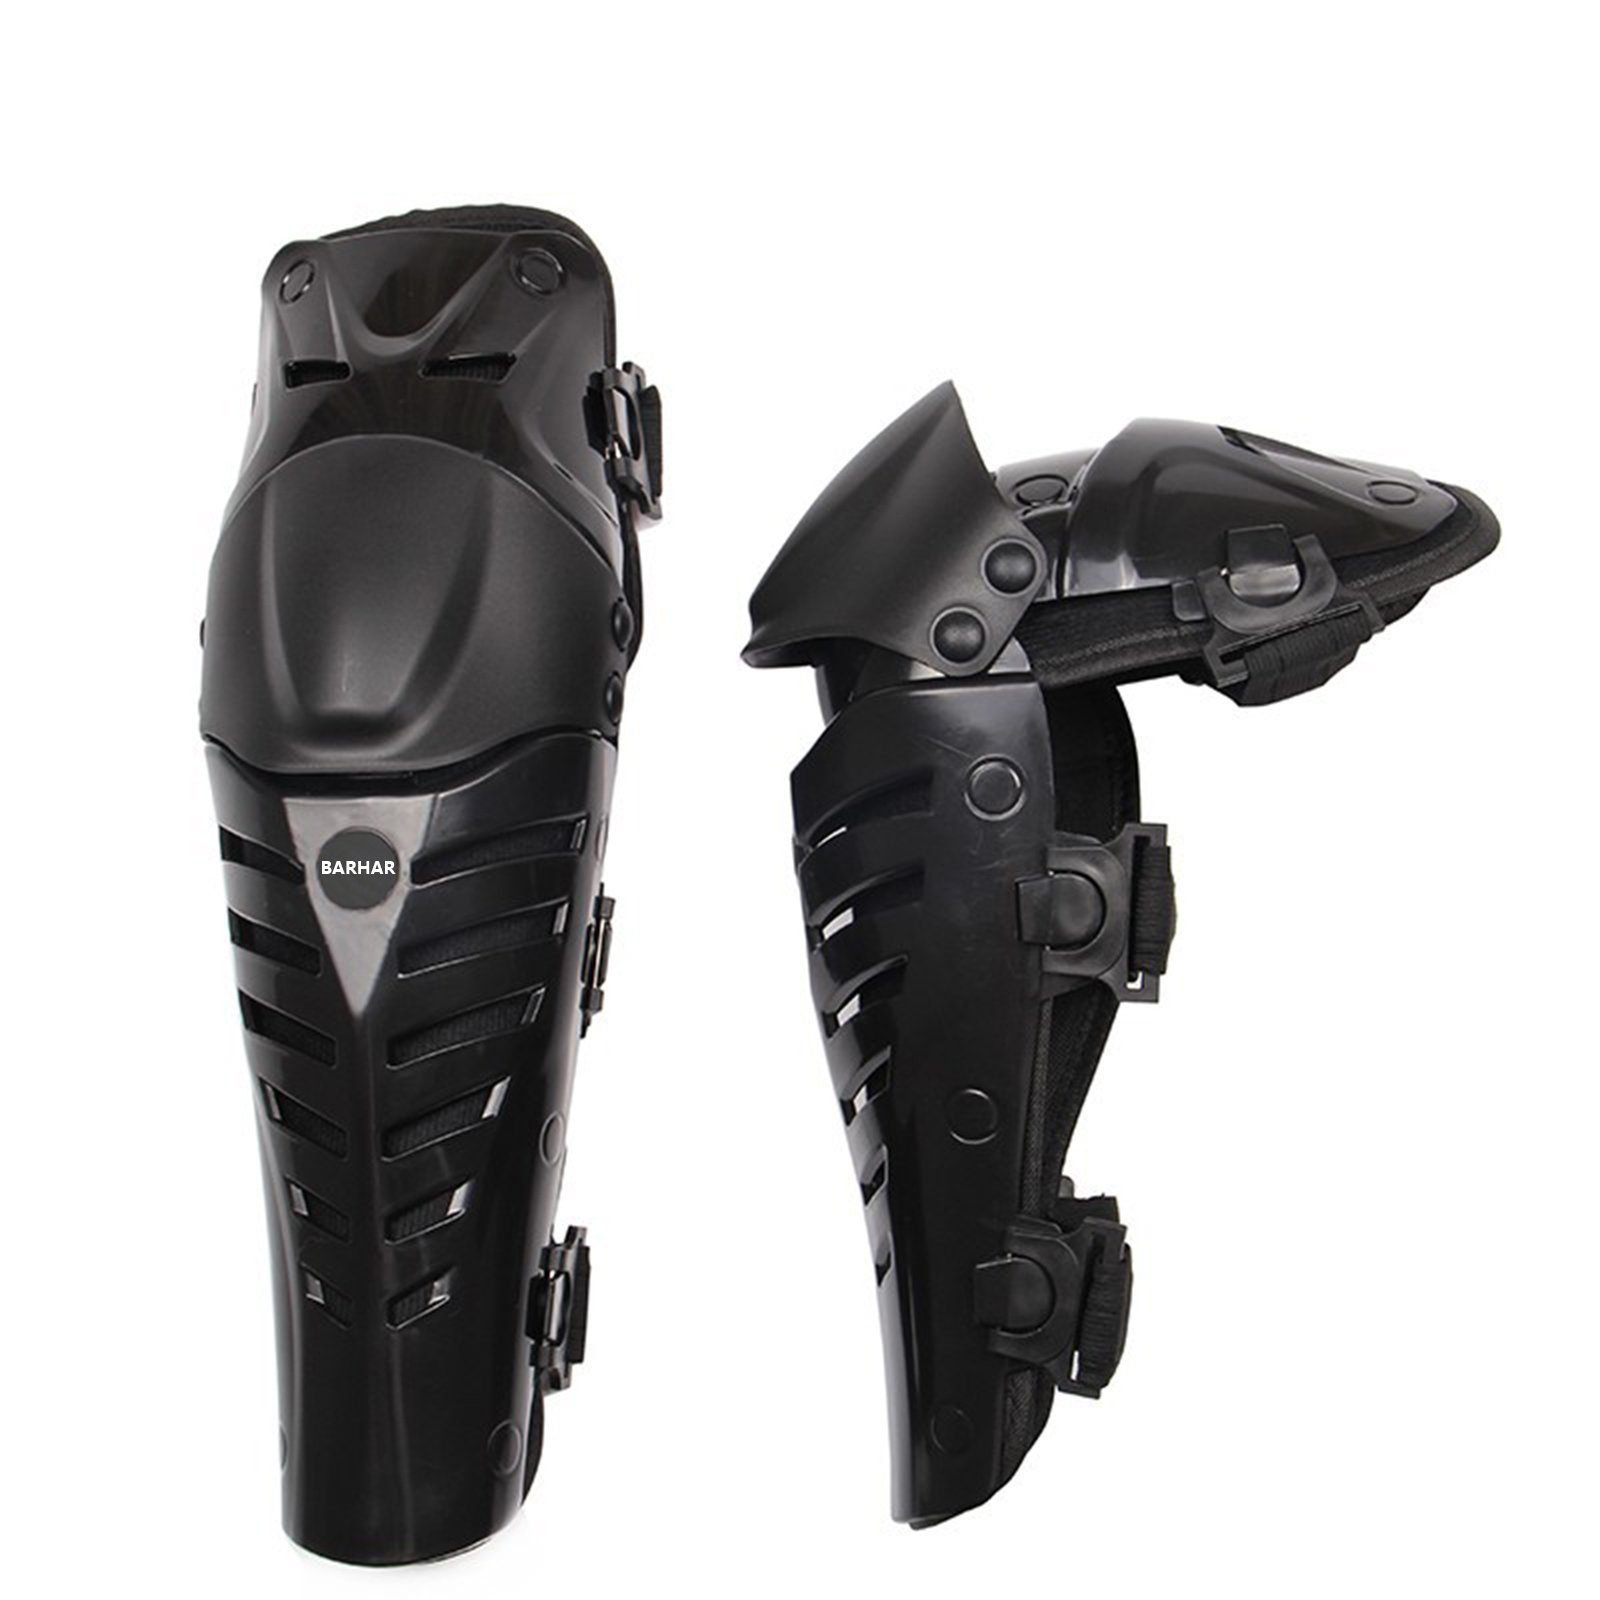 Cather Store 1 Pair of Adults Fashion Knee Shin Armor Protect Guard Pads Accessories with Plastic Cement Hook for Motorcycle Motocross Racing (Black)